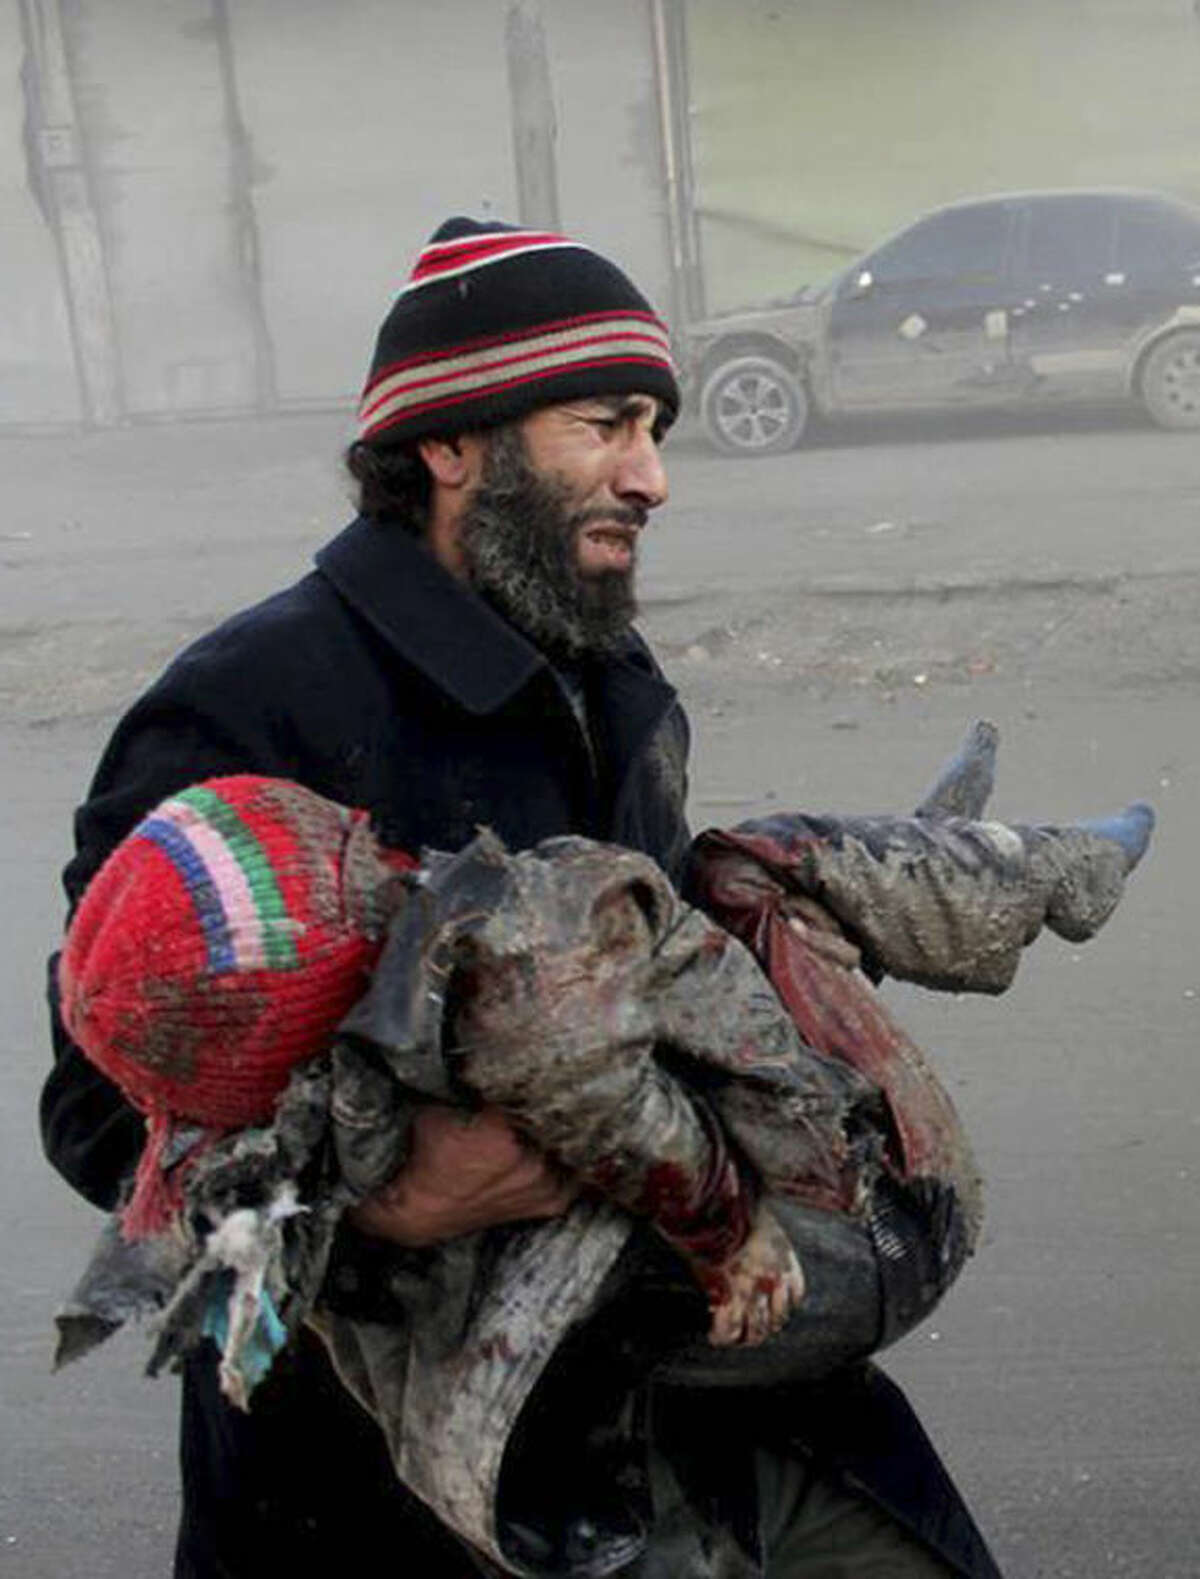 In this Sunday, Dec. 15, 2013 citizen journalism image provided by Aleppo Media Center, AMC, which has been authenticated based on its contents and other AP reporting, a Syrian man cries while holding the body of child who was killed following a Syrian government airstrike in Aleppo, Syria. The Britain based Syrian Observatory for Human Rights said Monday that dozens of children were among scores killed in airstrikes on several opposition areas a day earlier. (AP Photo/Aleppo Media Center, AMC)